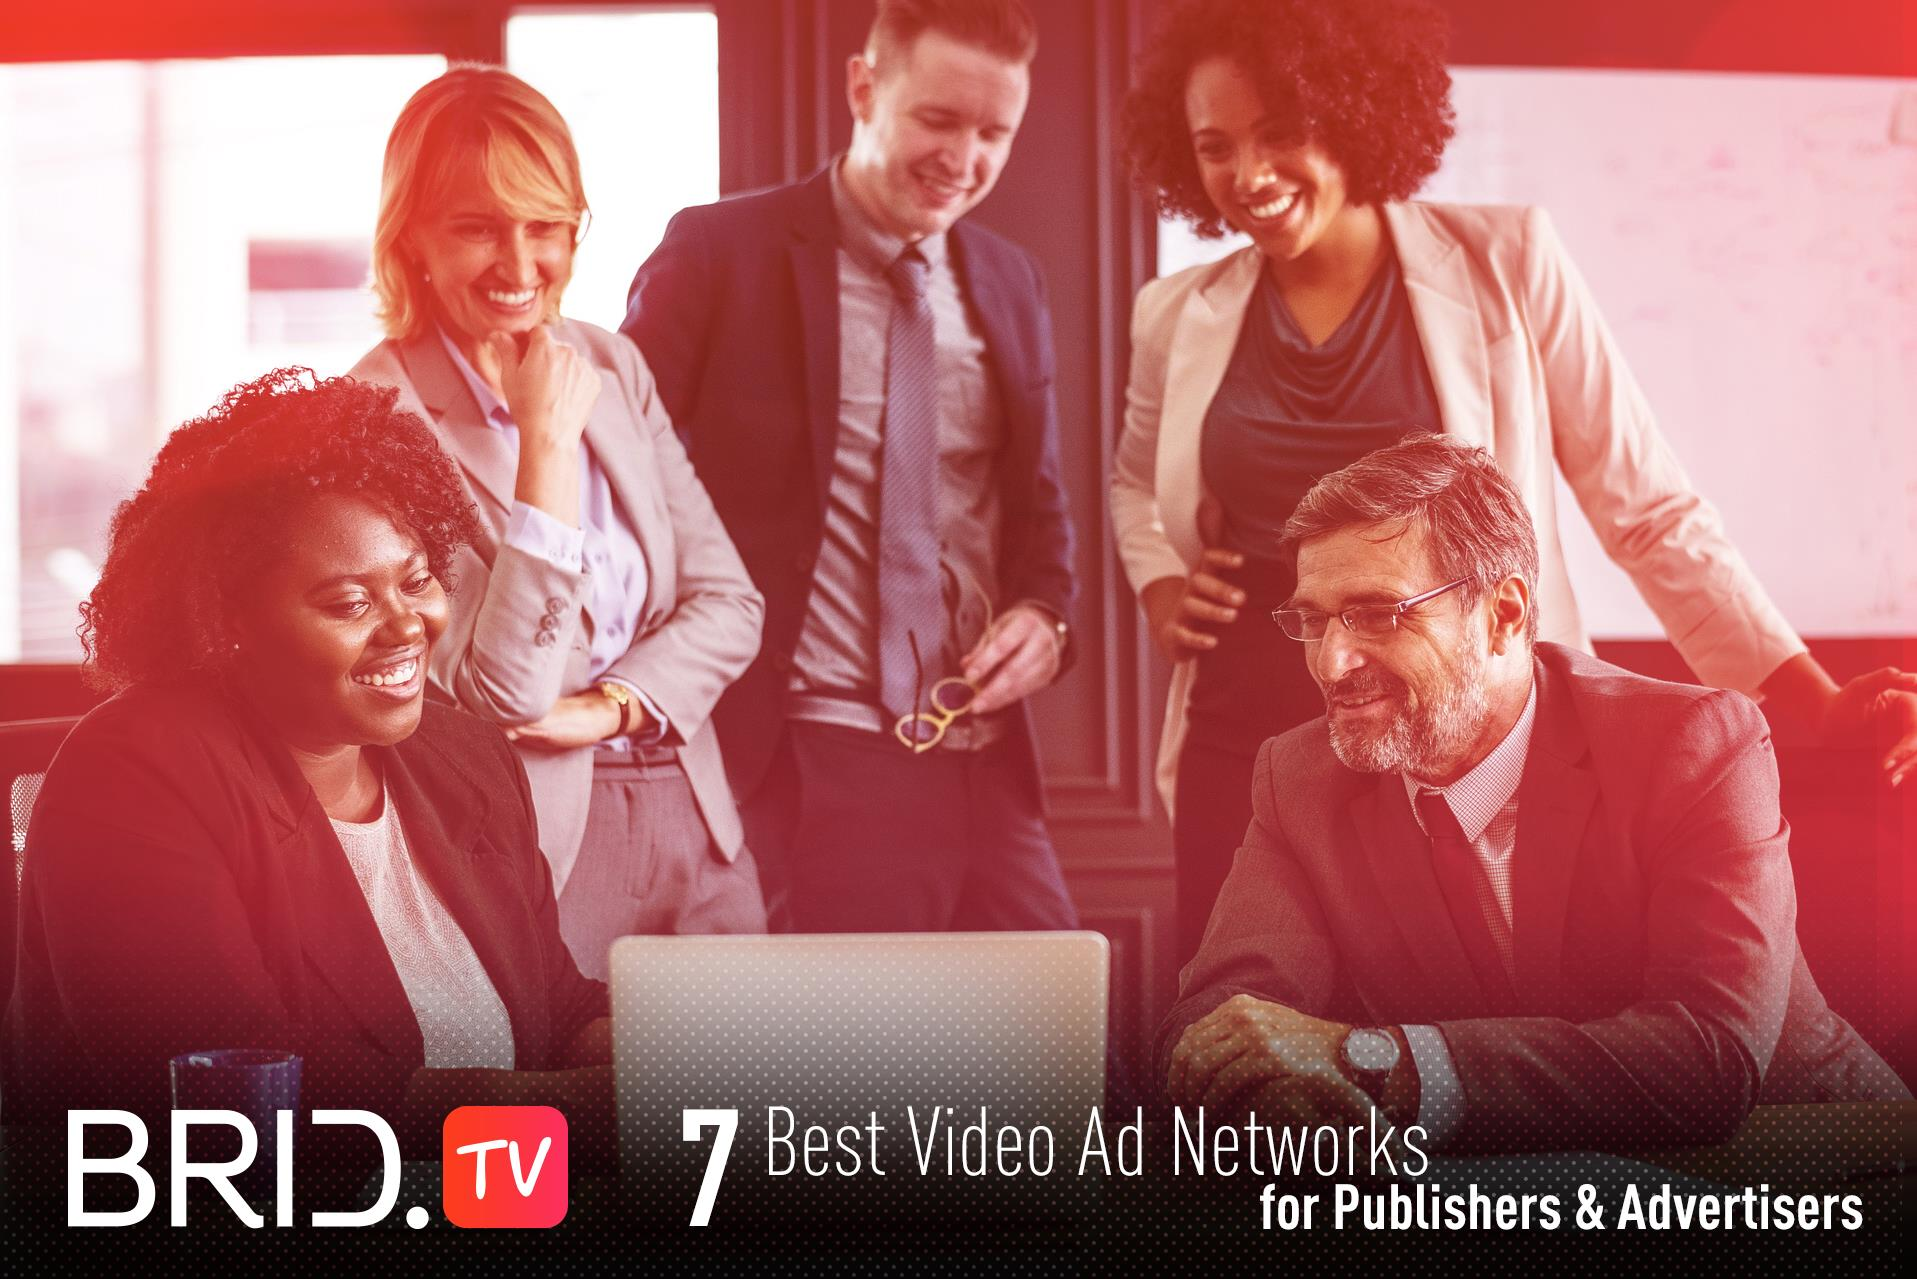 7 Best Video Ad Networks for Publishers & Advertisers